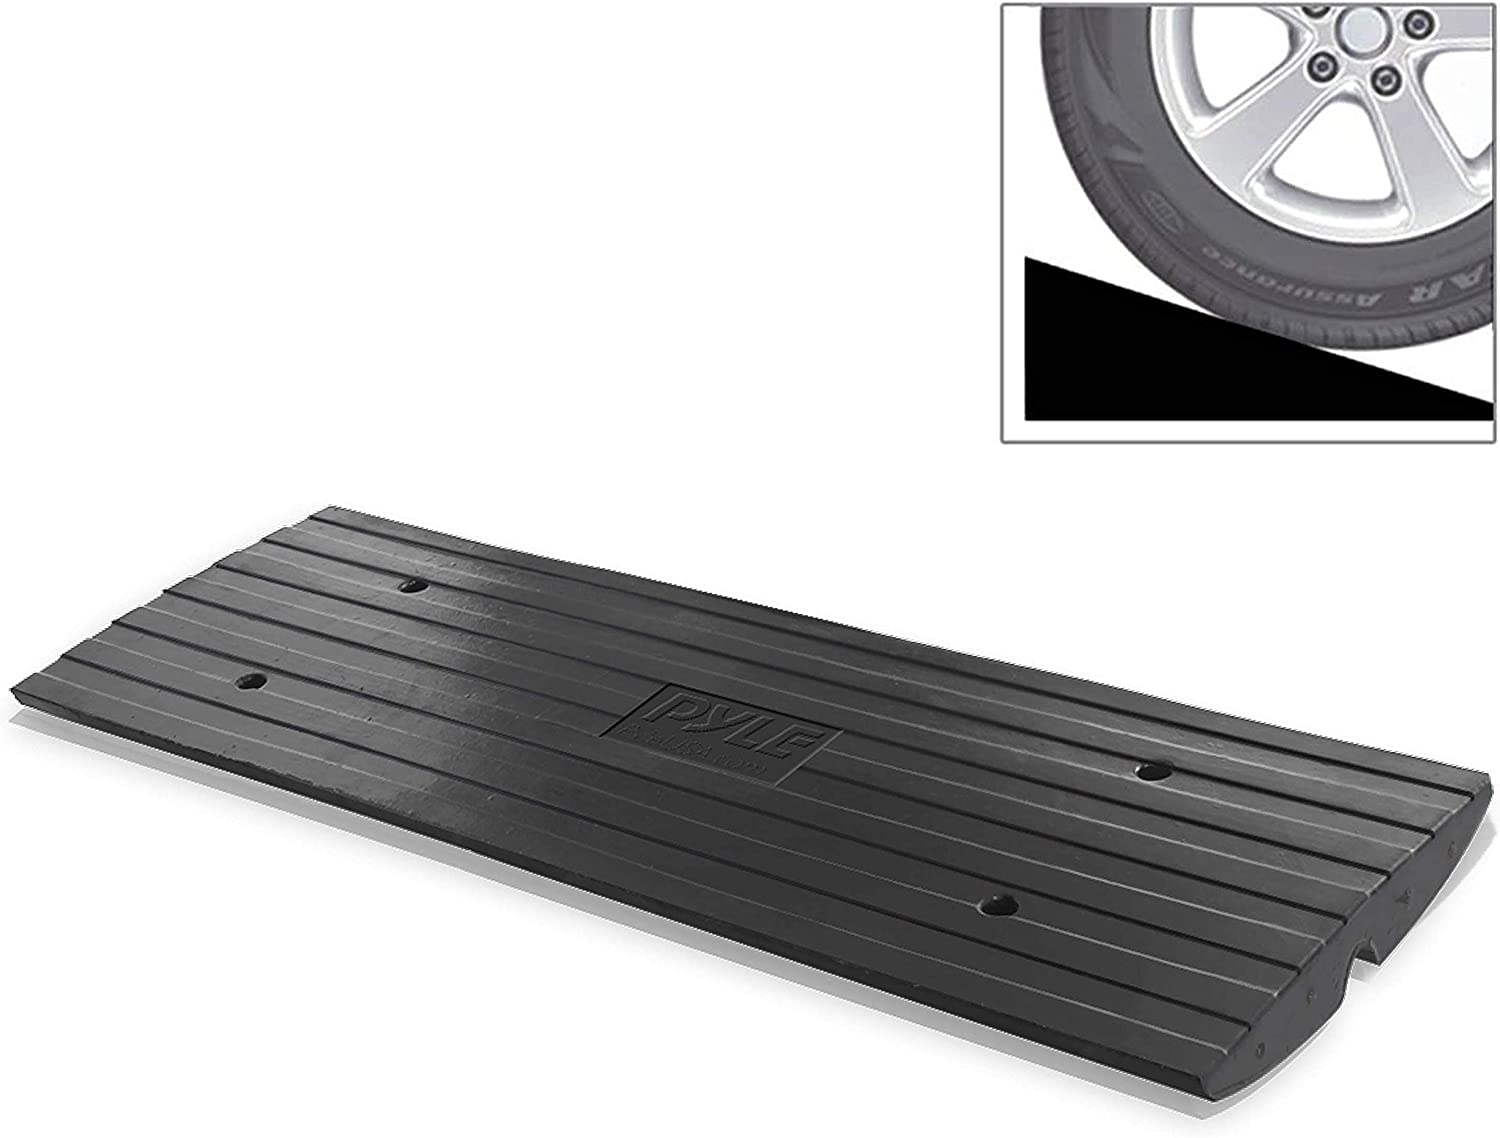 Buses Trucks for Forklifts 5 Ton Sidewalk Curb Ramp 10 Width Driveway Ramps for The Curb Heavy Duty Rubber Curb Ramp VEVOR Curb Ramp 3.7 Height